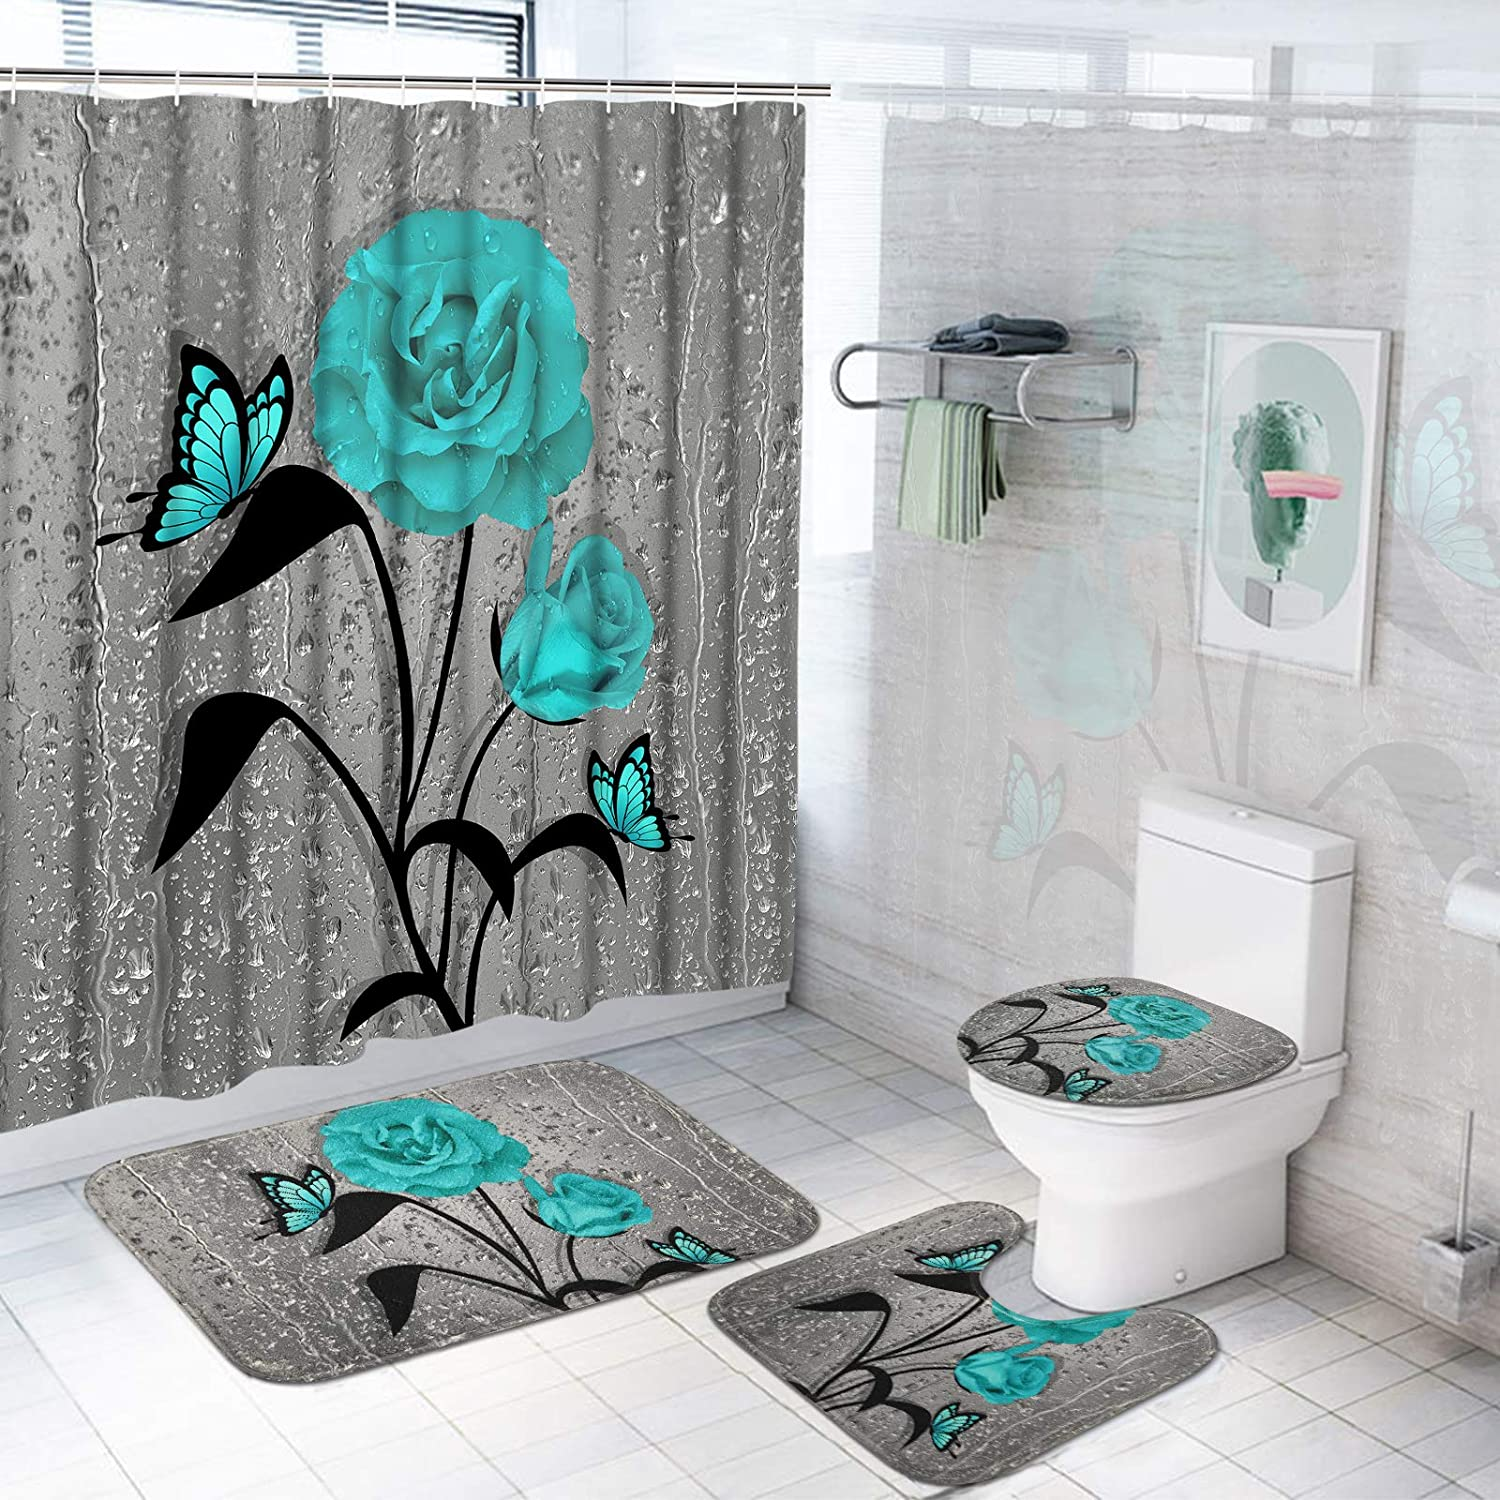 TAMOC 4 Pcs Teal Gray Rose Shower Curtain Sets with Non-Slip Rug, Toilet Lid Cover and Bath Mat, Blue Rose Shower Curtain with 12 Hooks, Waterproof Raindrops Shower Curtain for Bathroom